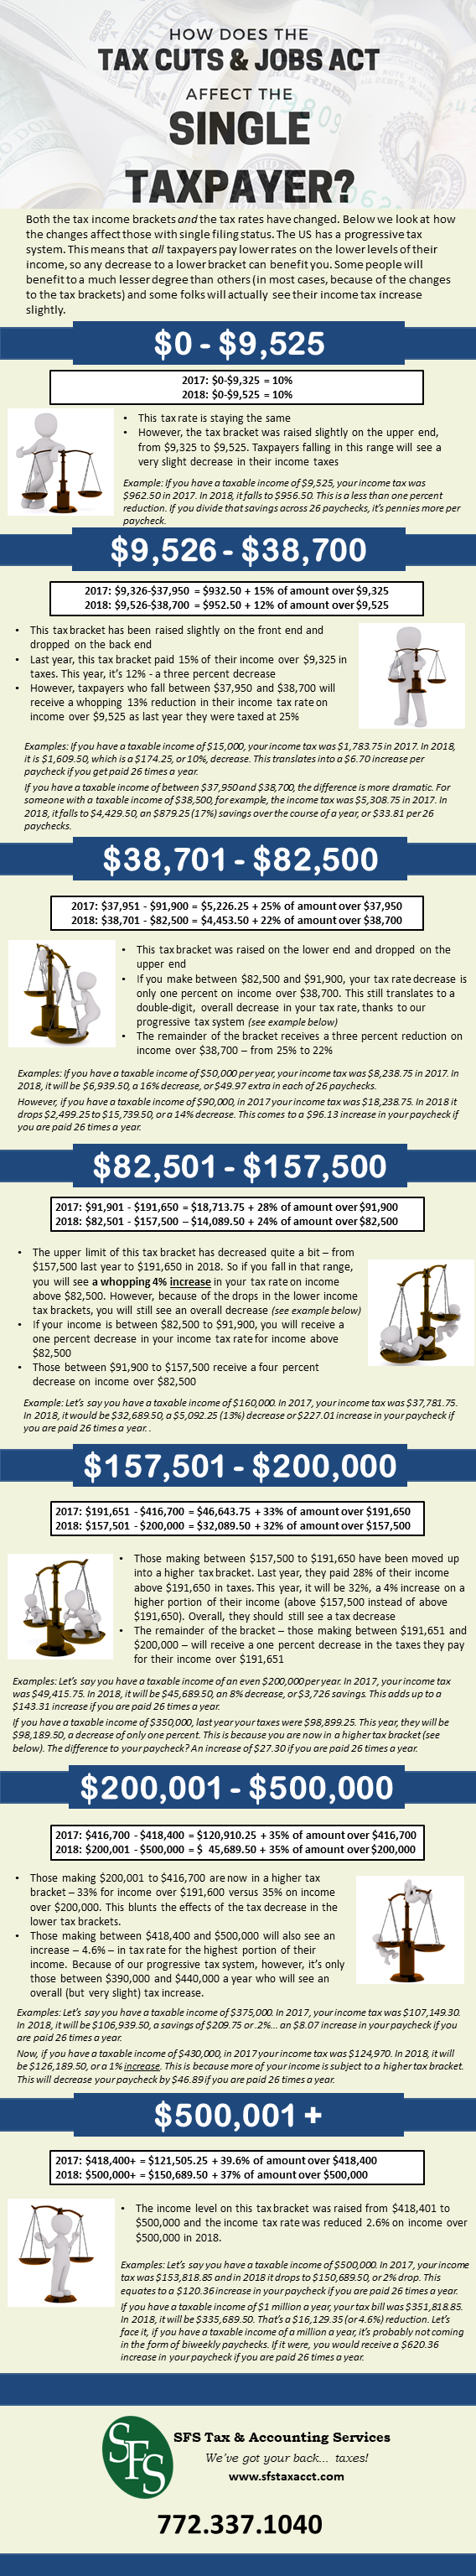 What Did the Tax Cuts and Jobs Act Do to my Income Tax, SFS Tax. SFS Tax and Accounting, Single Filer Income Tax Infographic